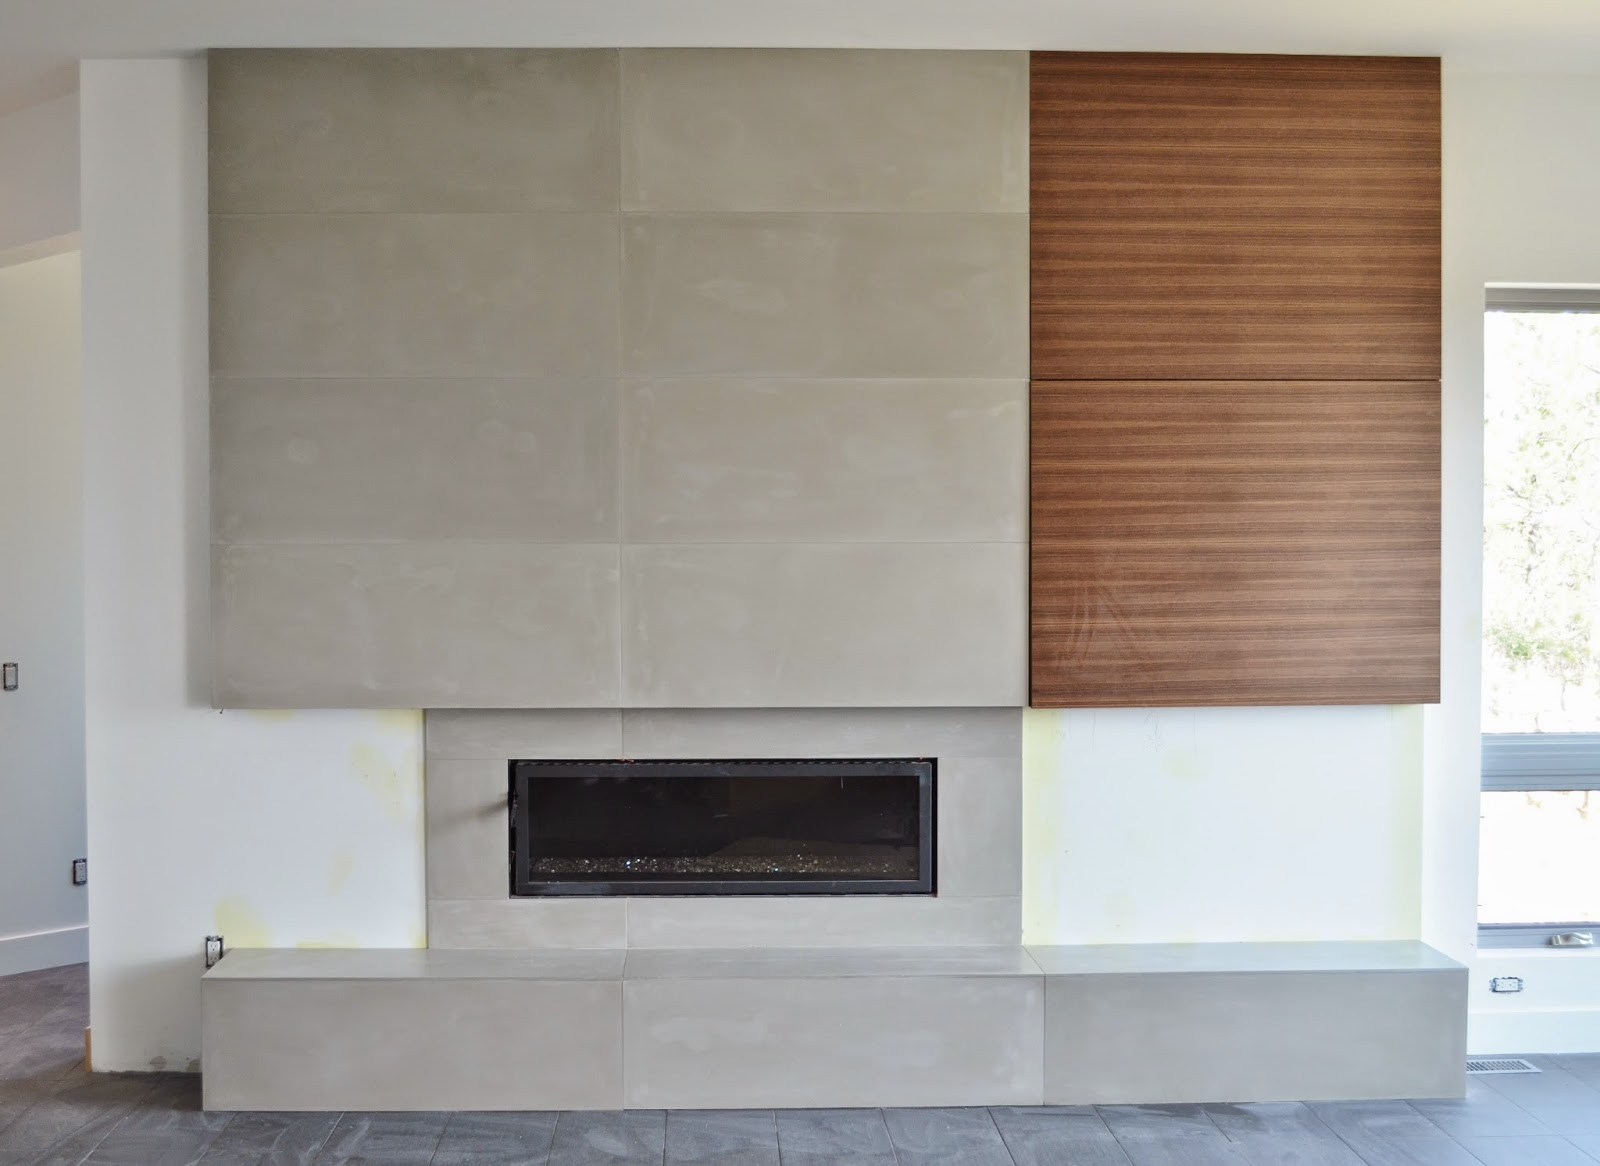 MODE CONCRETE: Contemporary Concrete Fireplace with Flush Wood ...